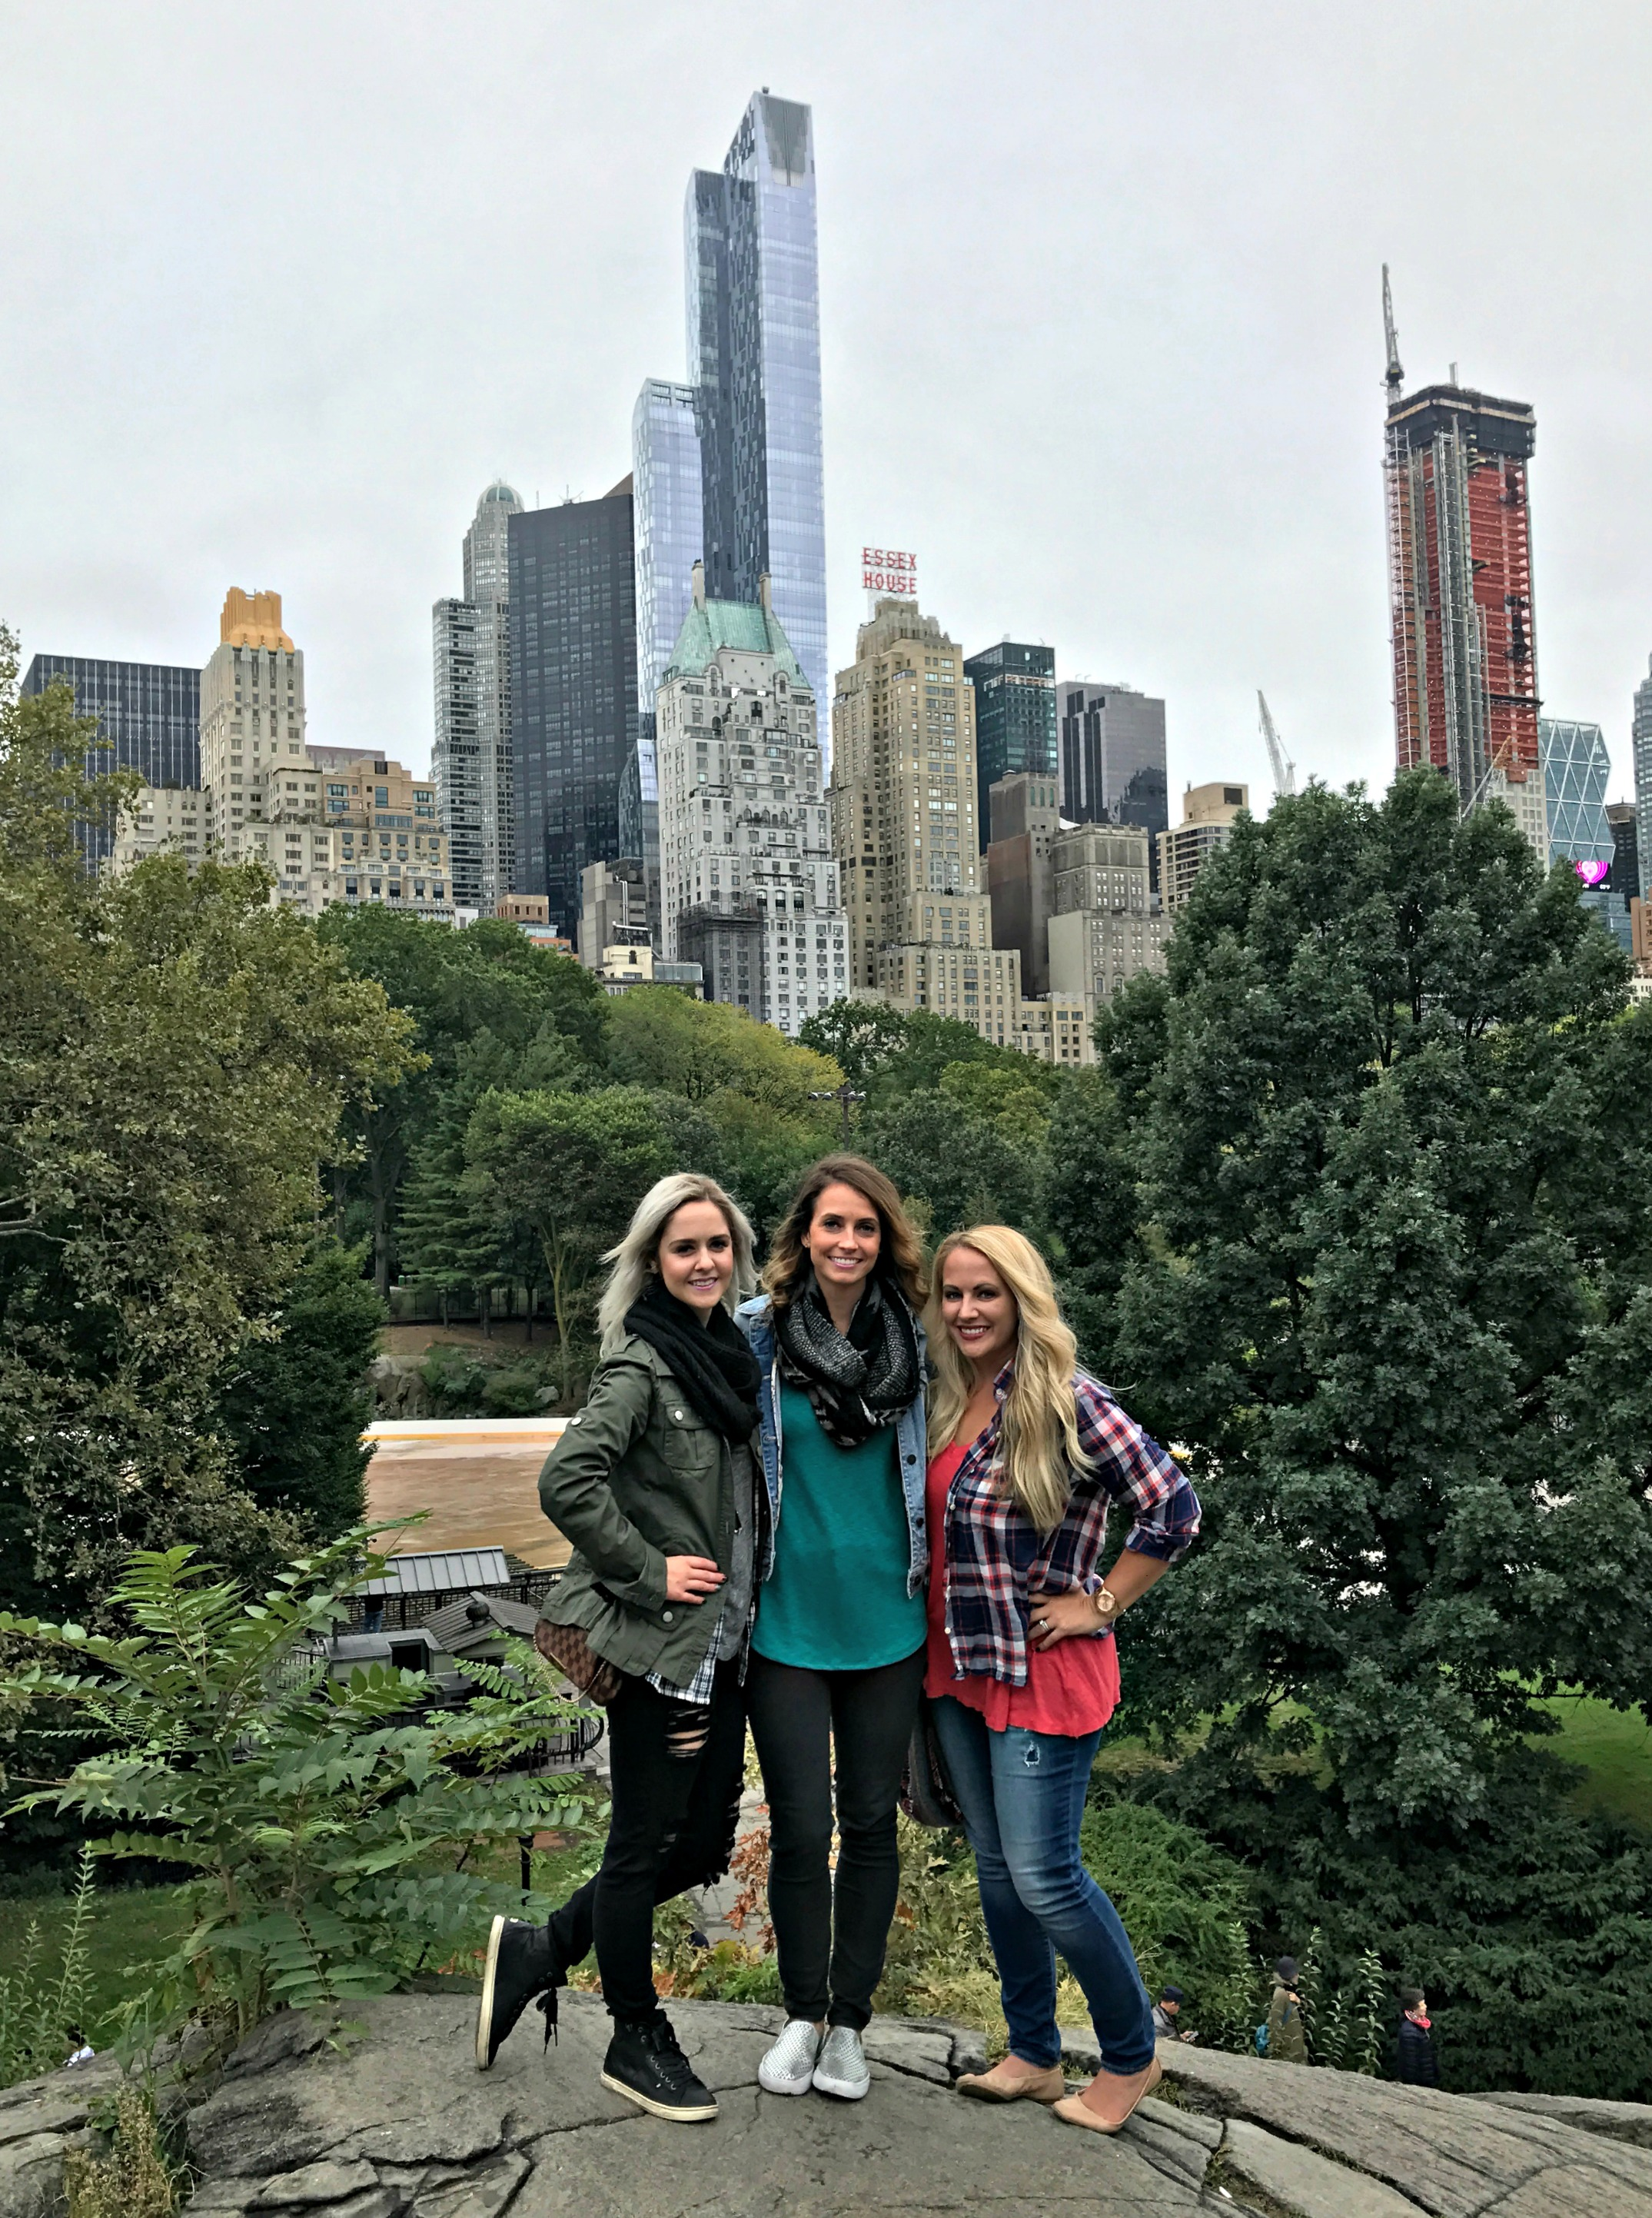 3-musketeers-in-central-park